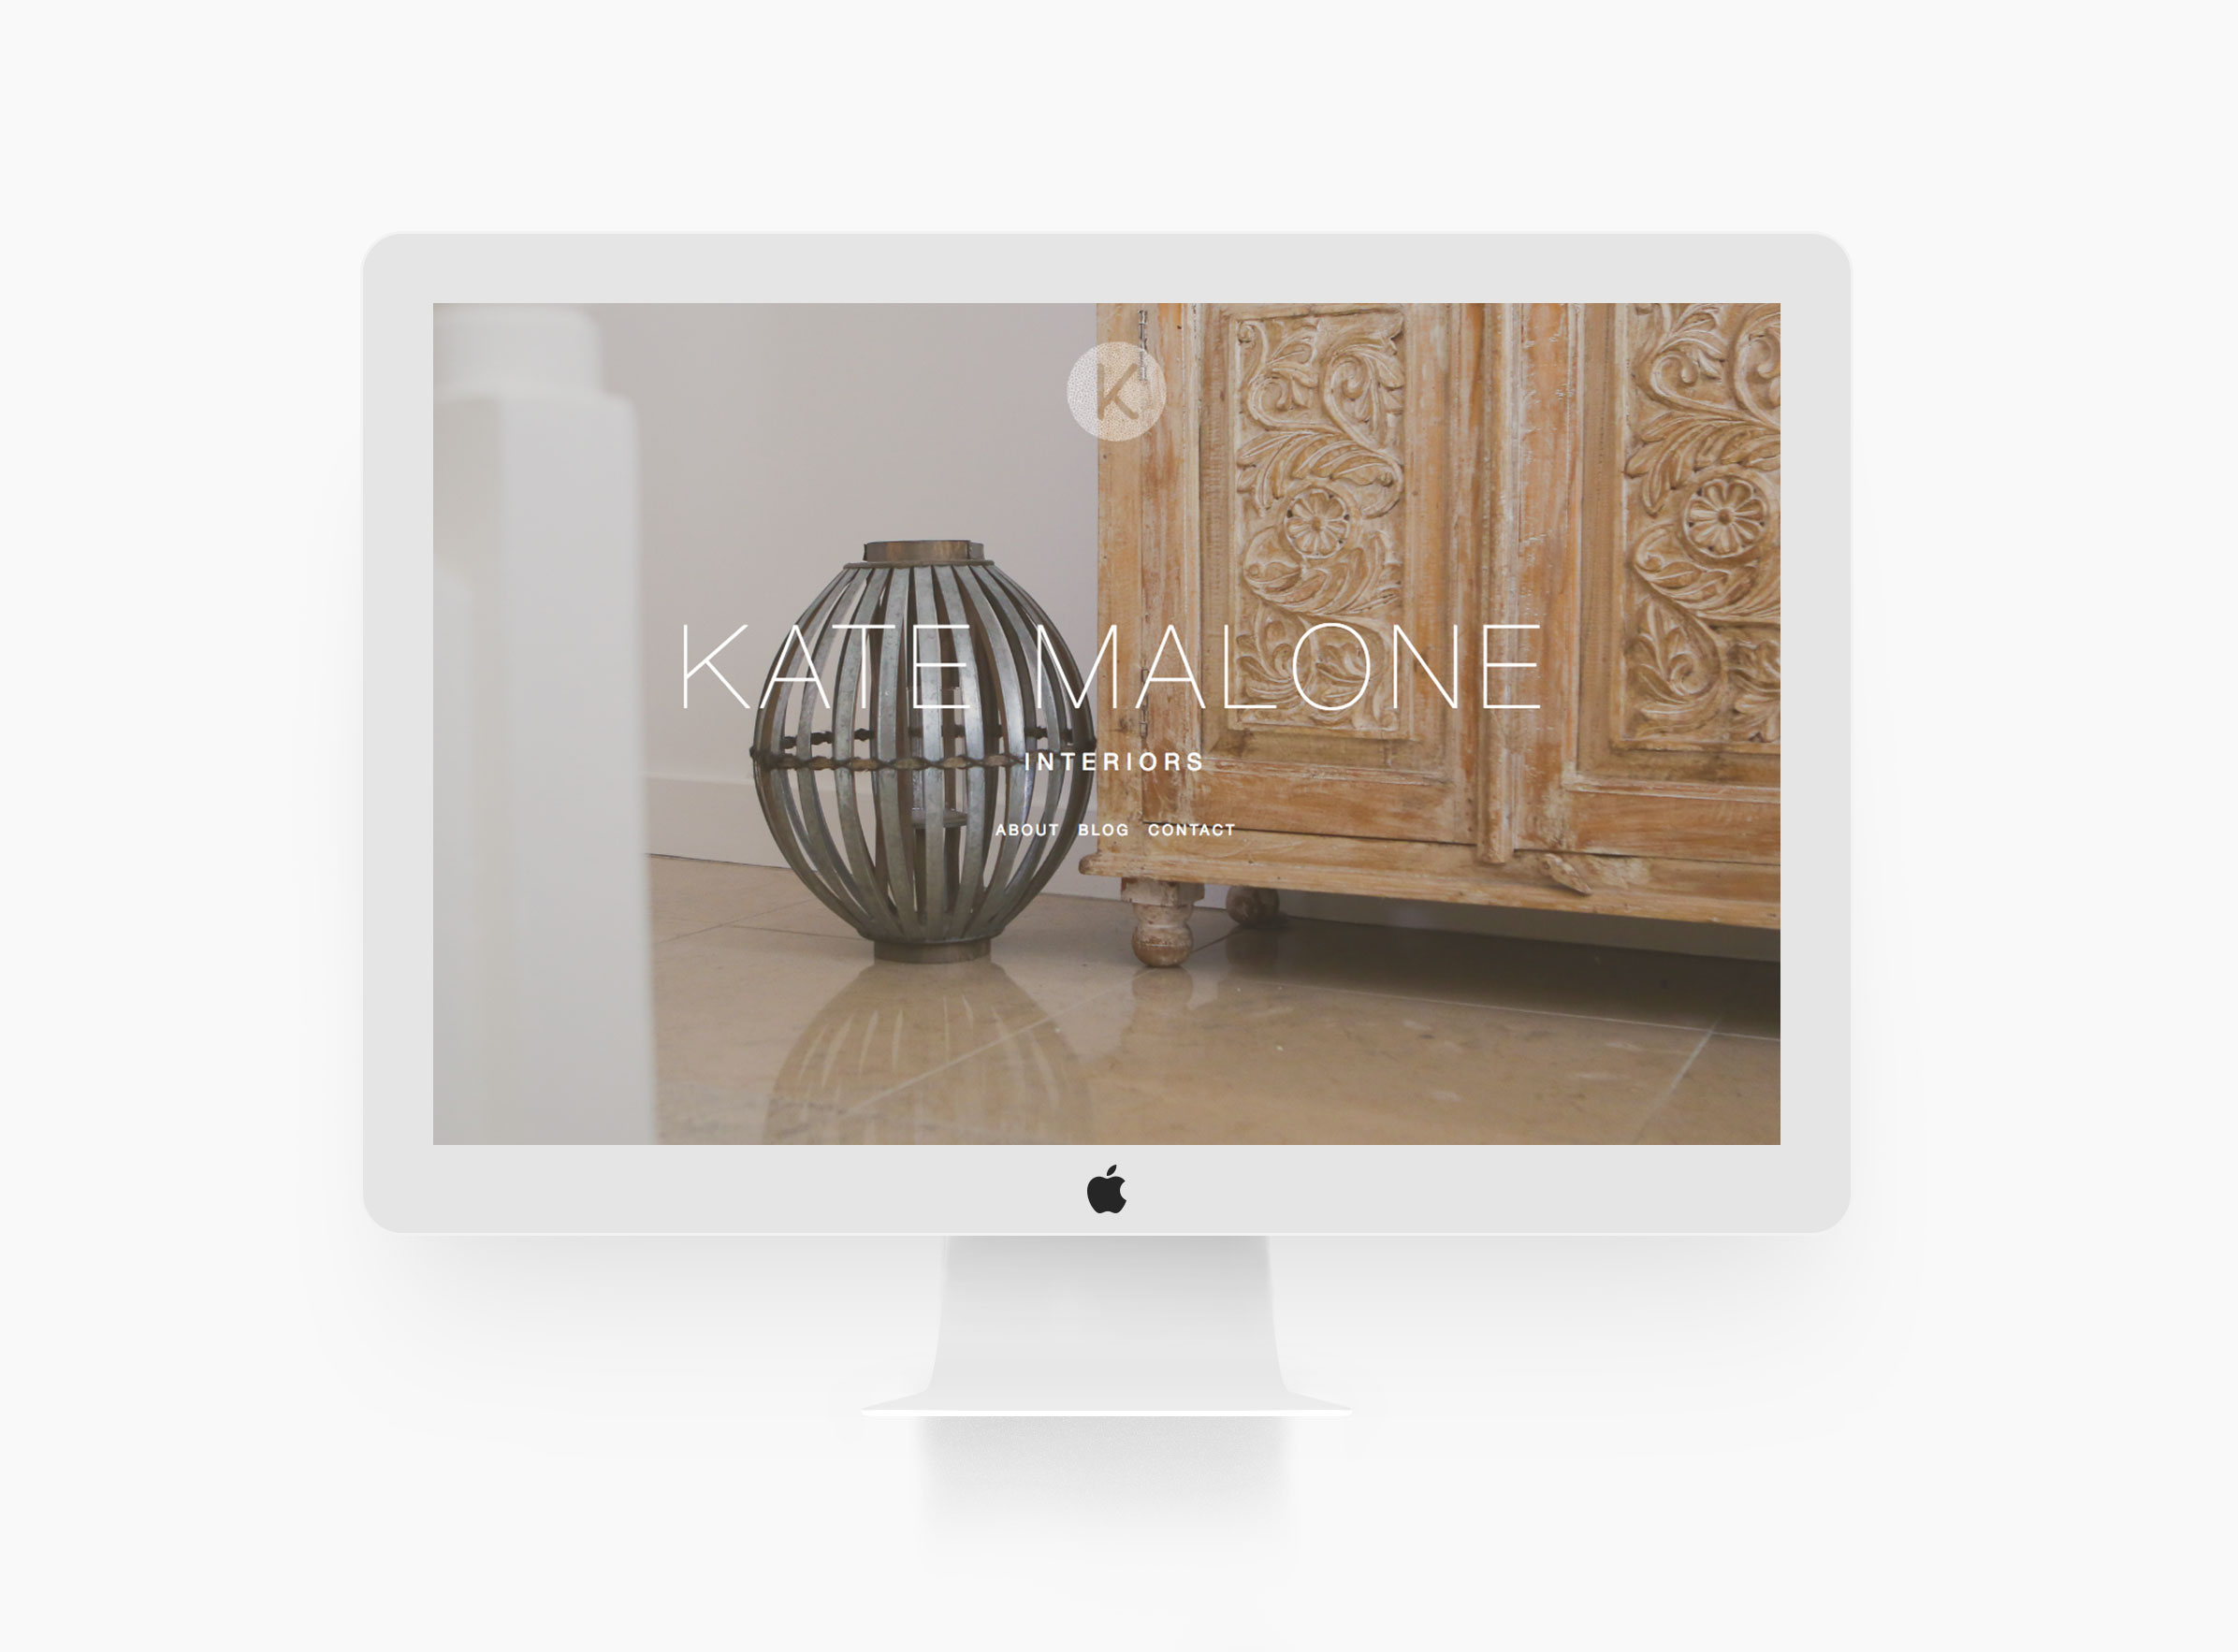 Web-Design-for-Interior-Designers-by-Hanna-Sorrell_Kate-Malone-Home.jpg